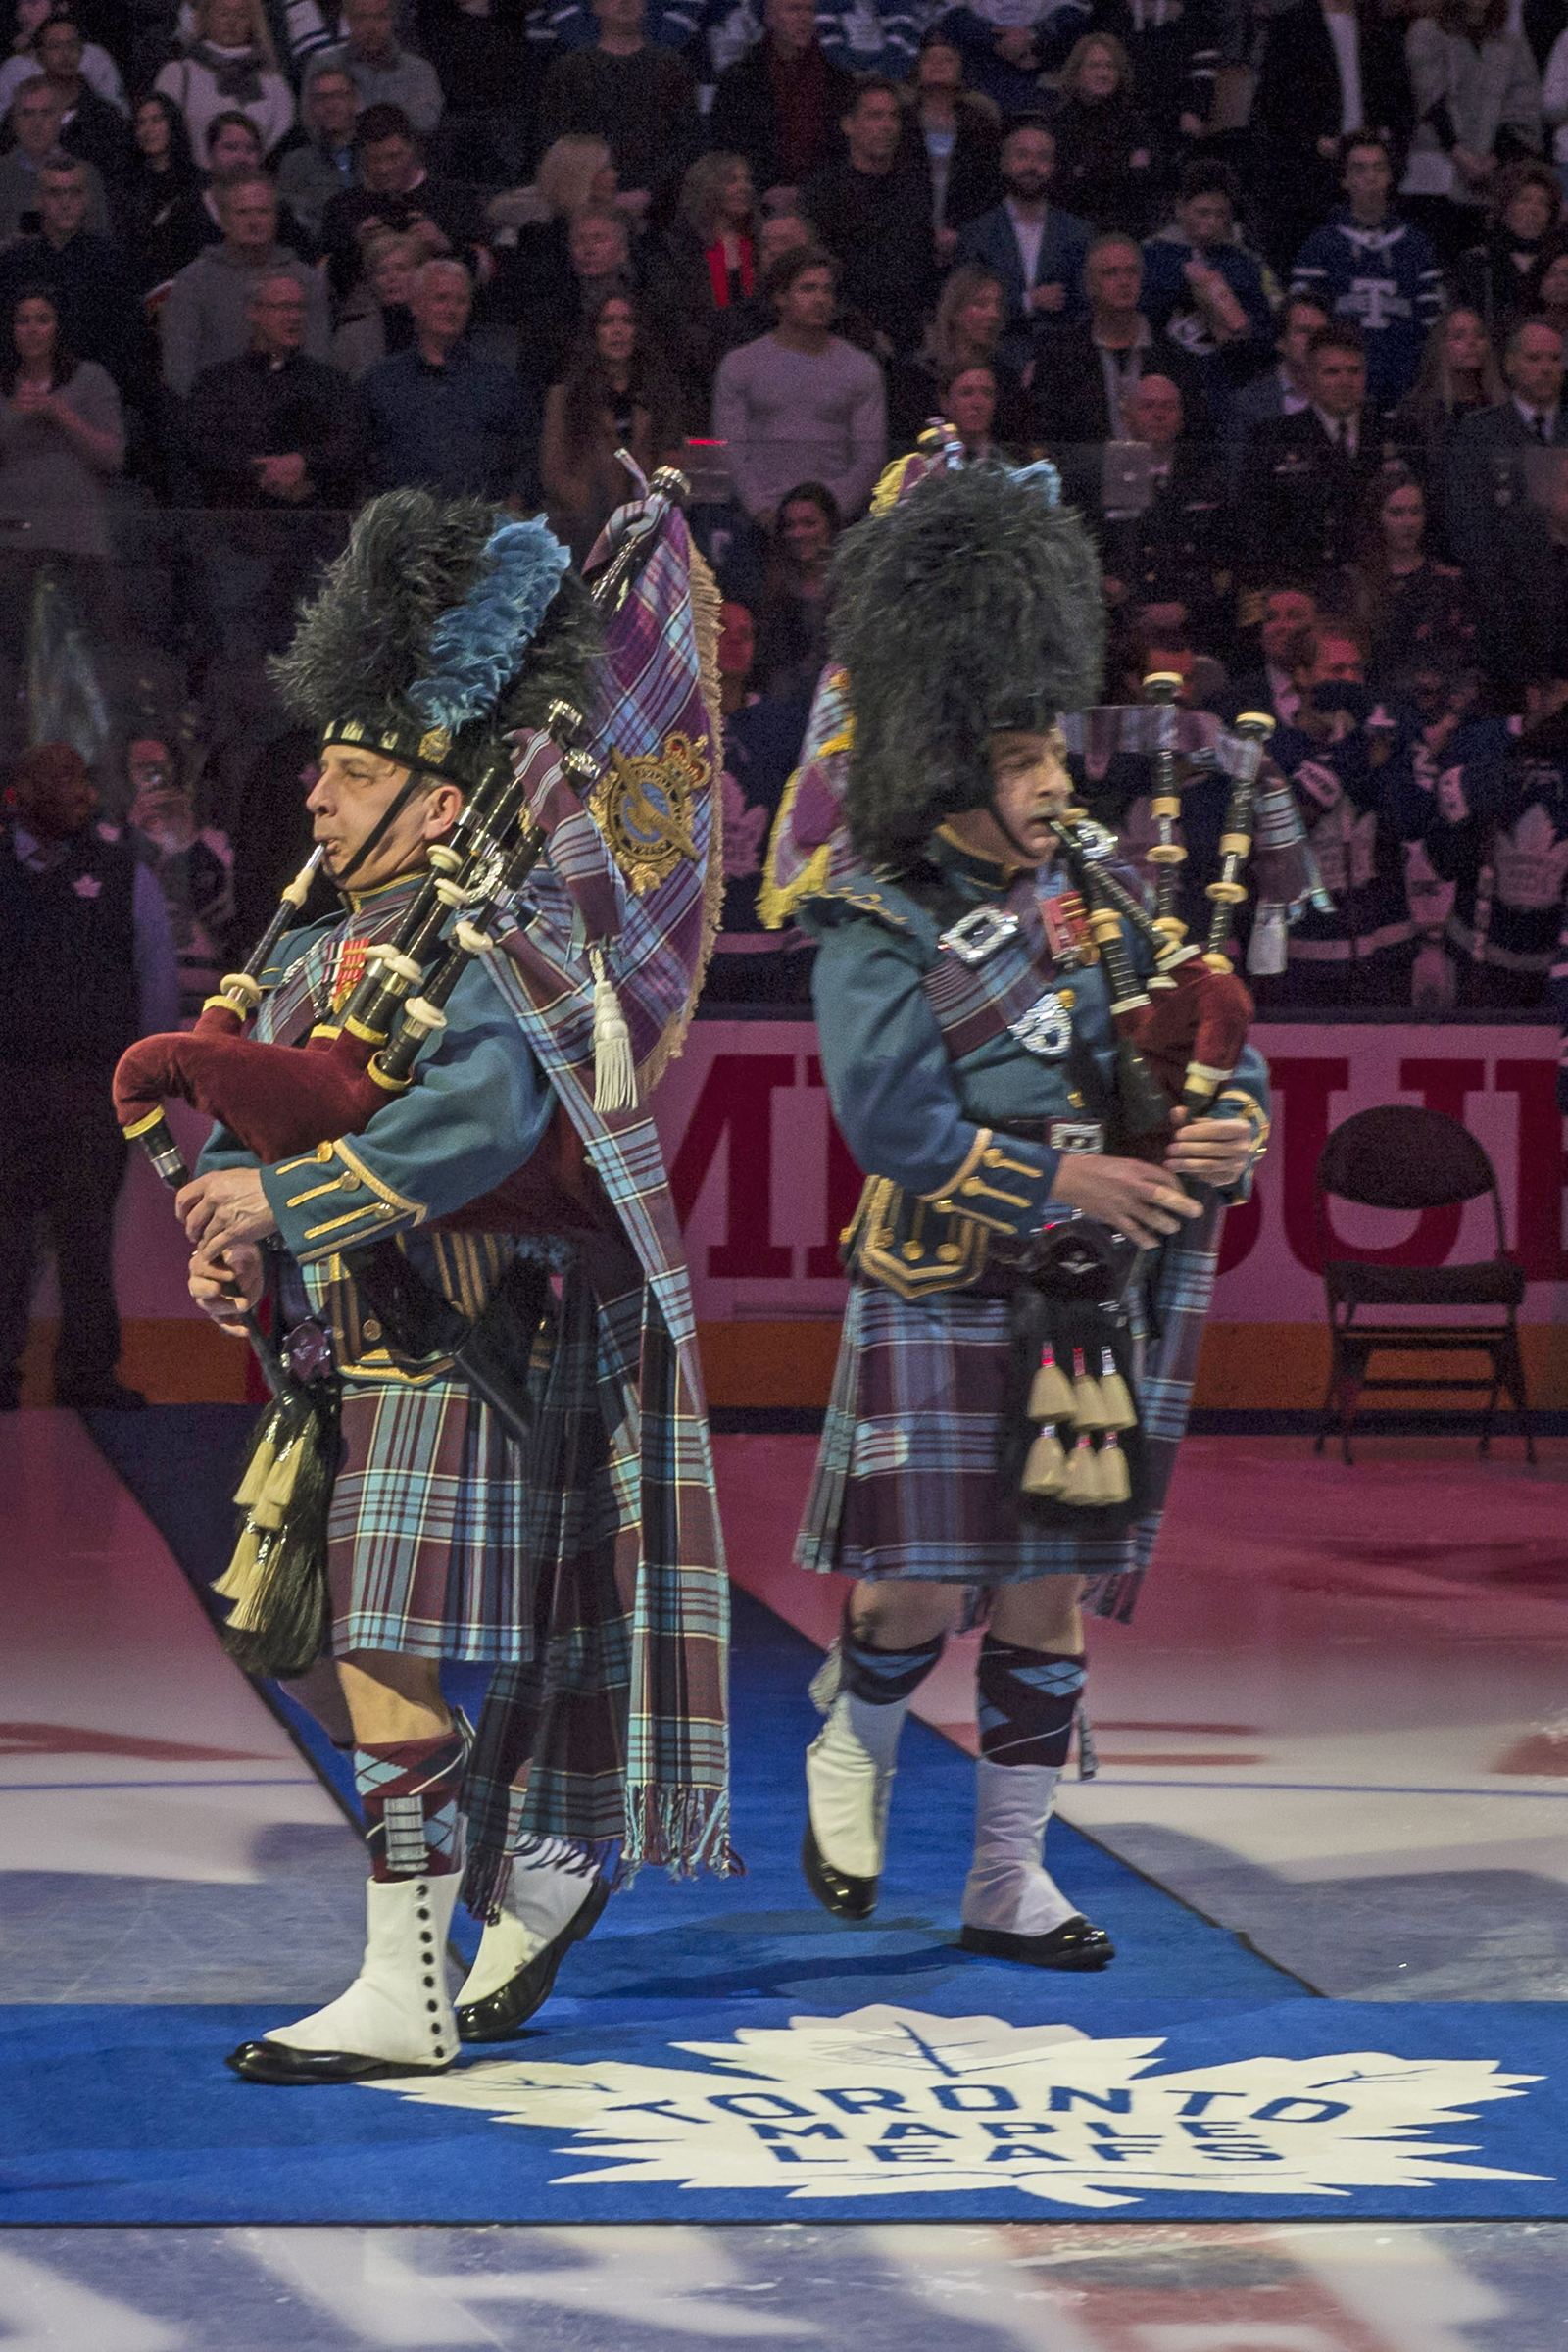 Lieutenant-Colonel (retired) Kenneth J. Mackenzie and Major Allan J. MacKenzie, brothers and members of the RCAF Pipes and Drums, lead RCAF members and Maple Leafs' alumni on to the ice at the Air Canada Centre in Toronto on February 10, 2018, for the ceremony transferring the custody of the RCAF's retired Colours to the Maple Leafs' hockey team. PHOTO: Corporal Alana Morin, FA03-2018-0015-005